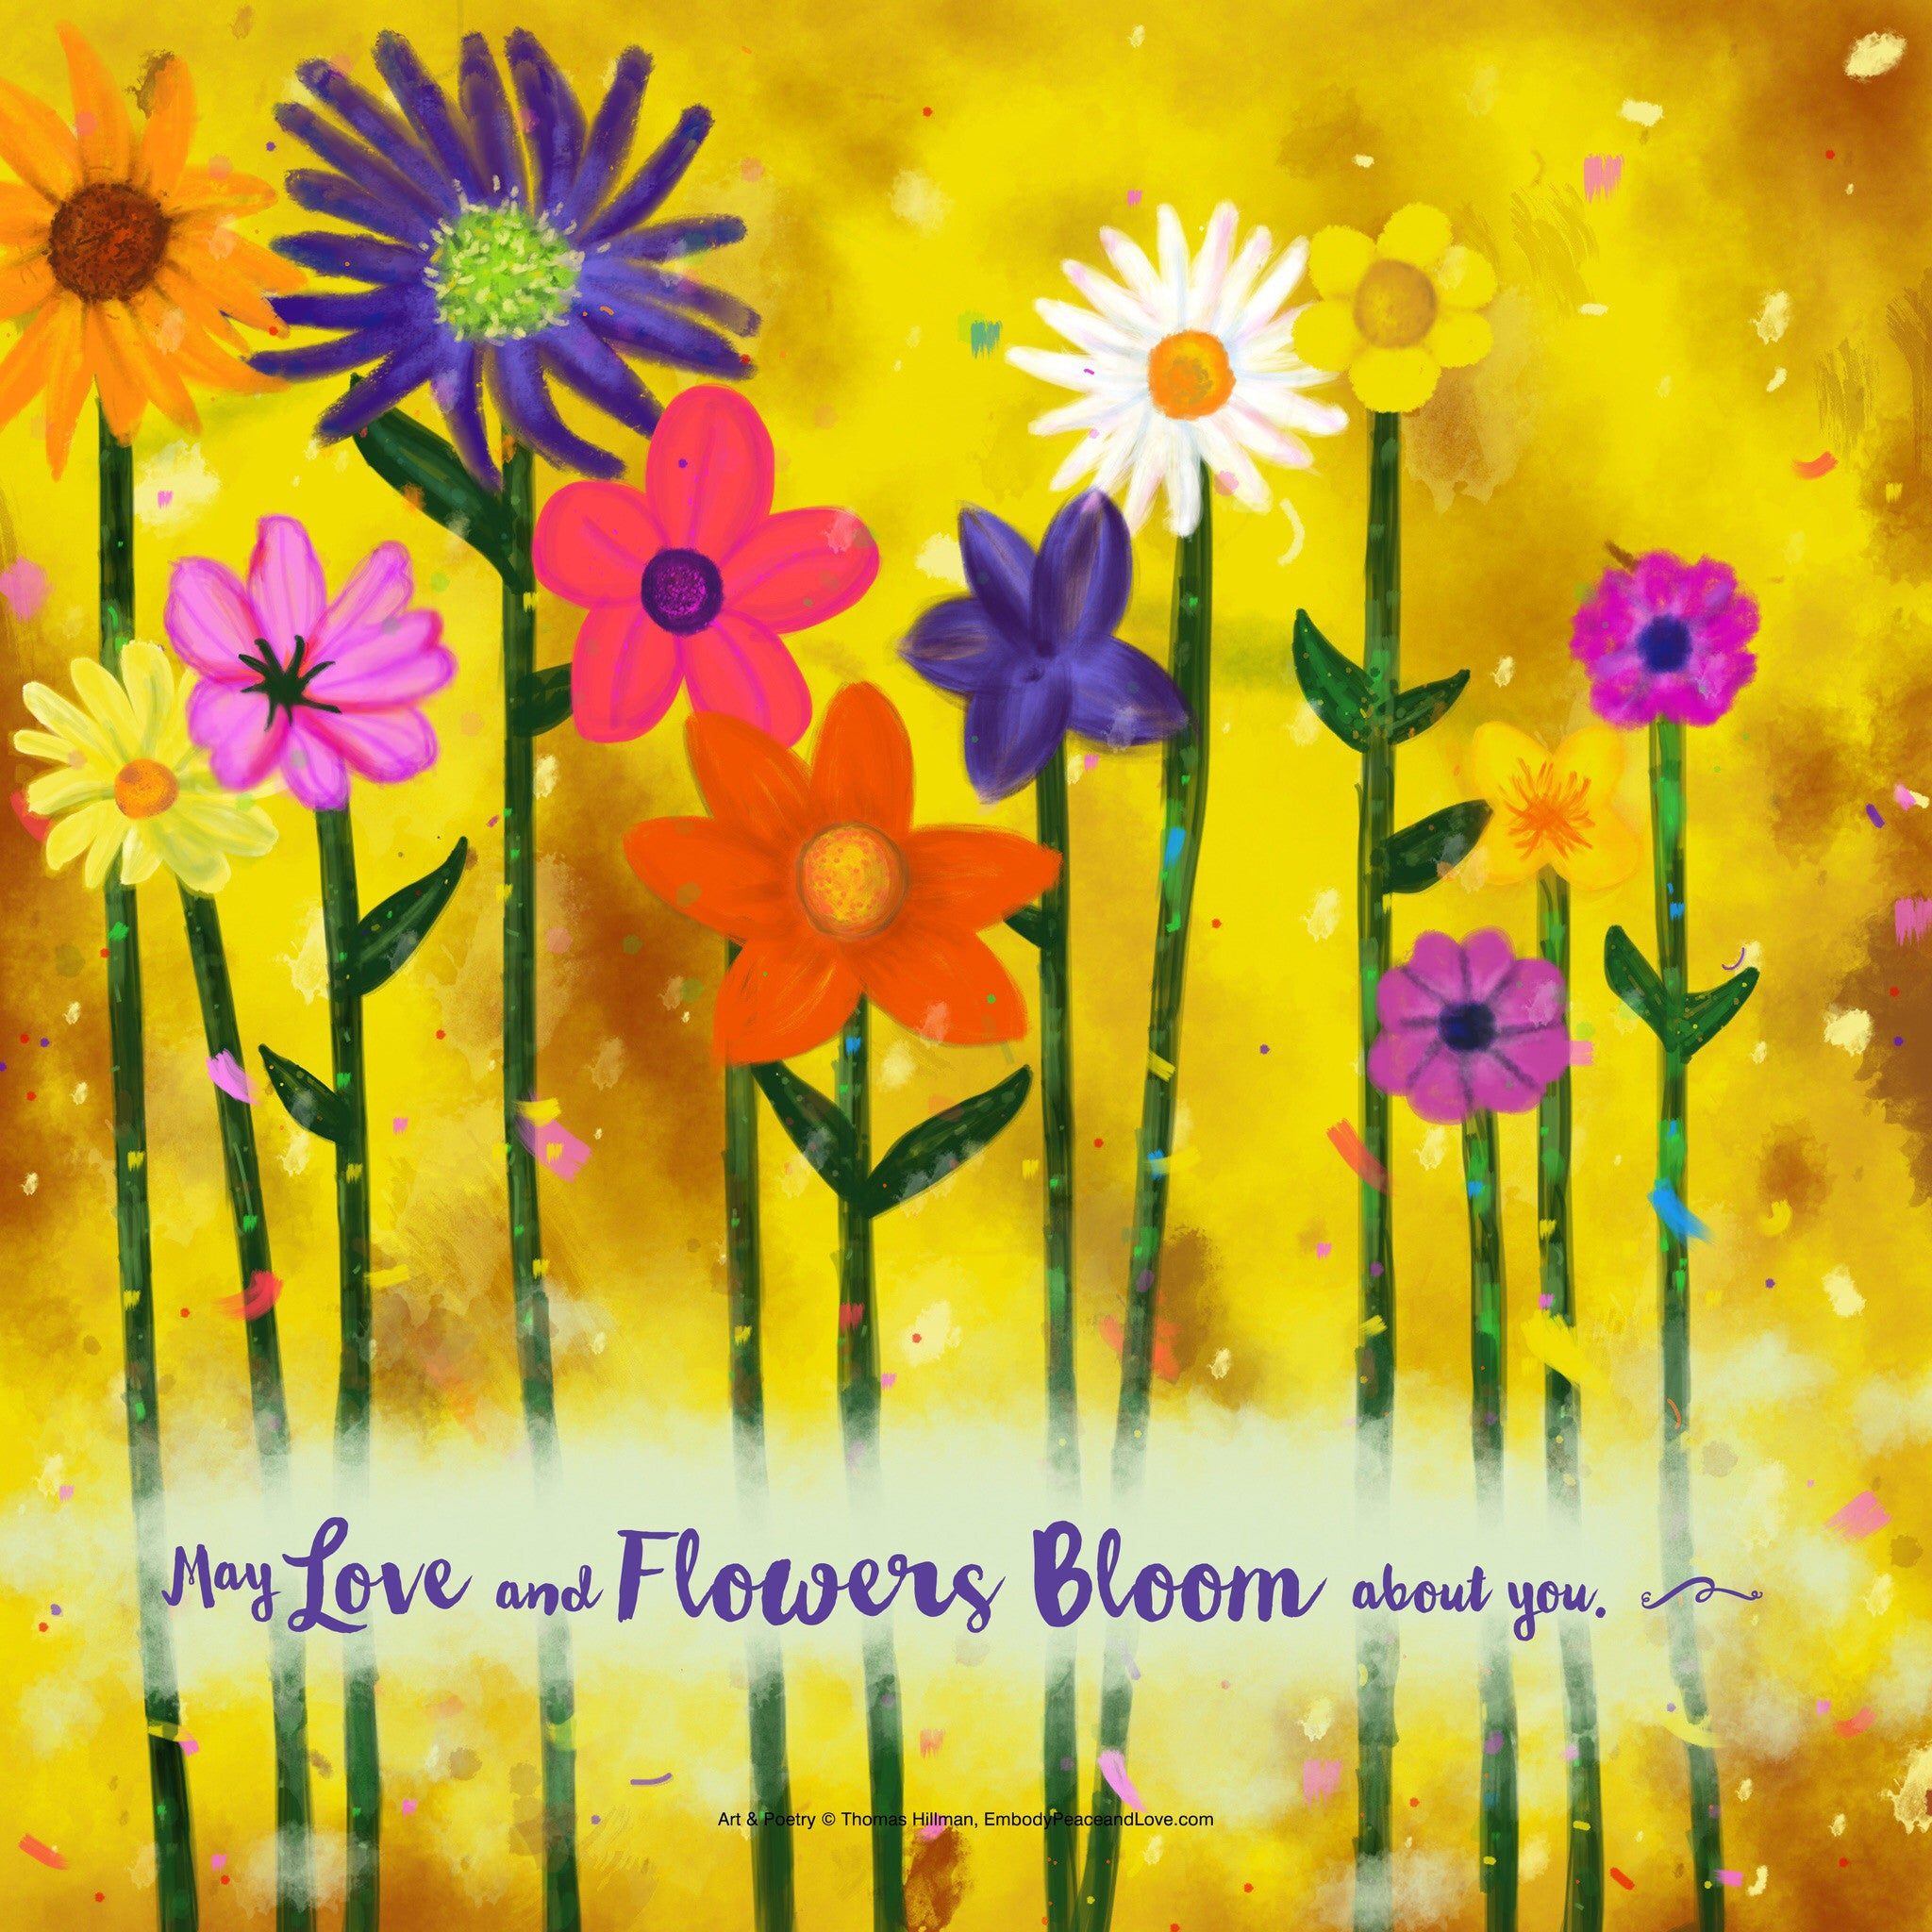 Poster_May love and flowers bloom about you.